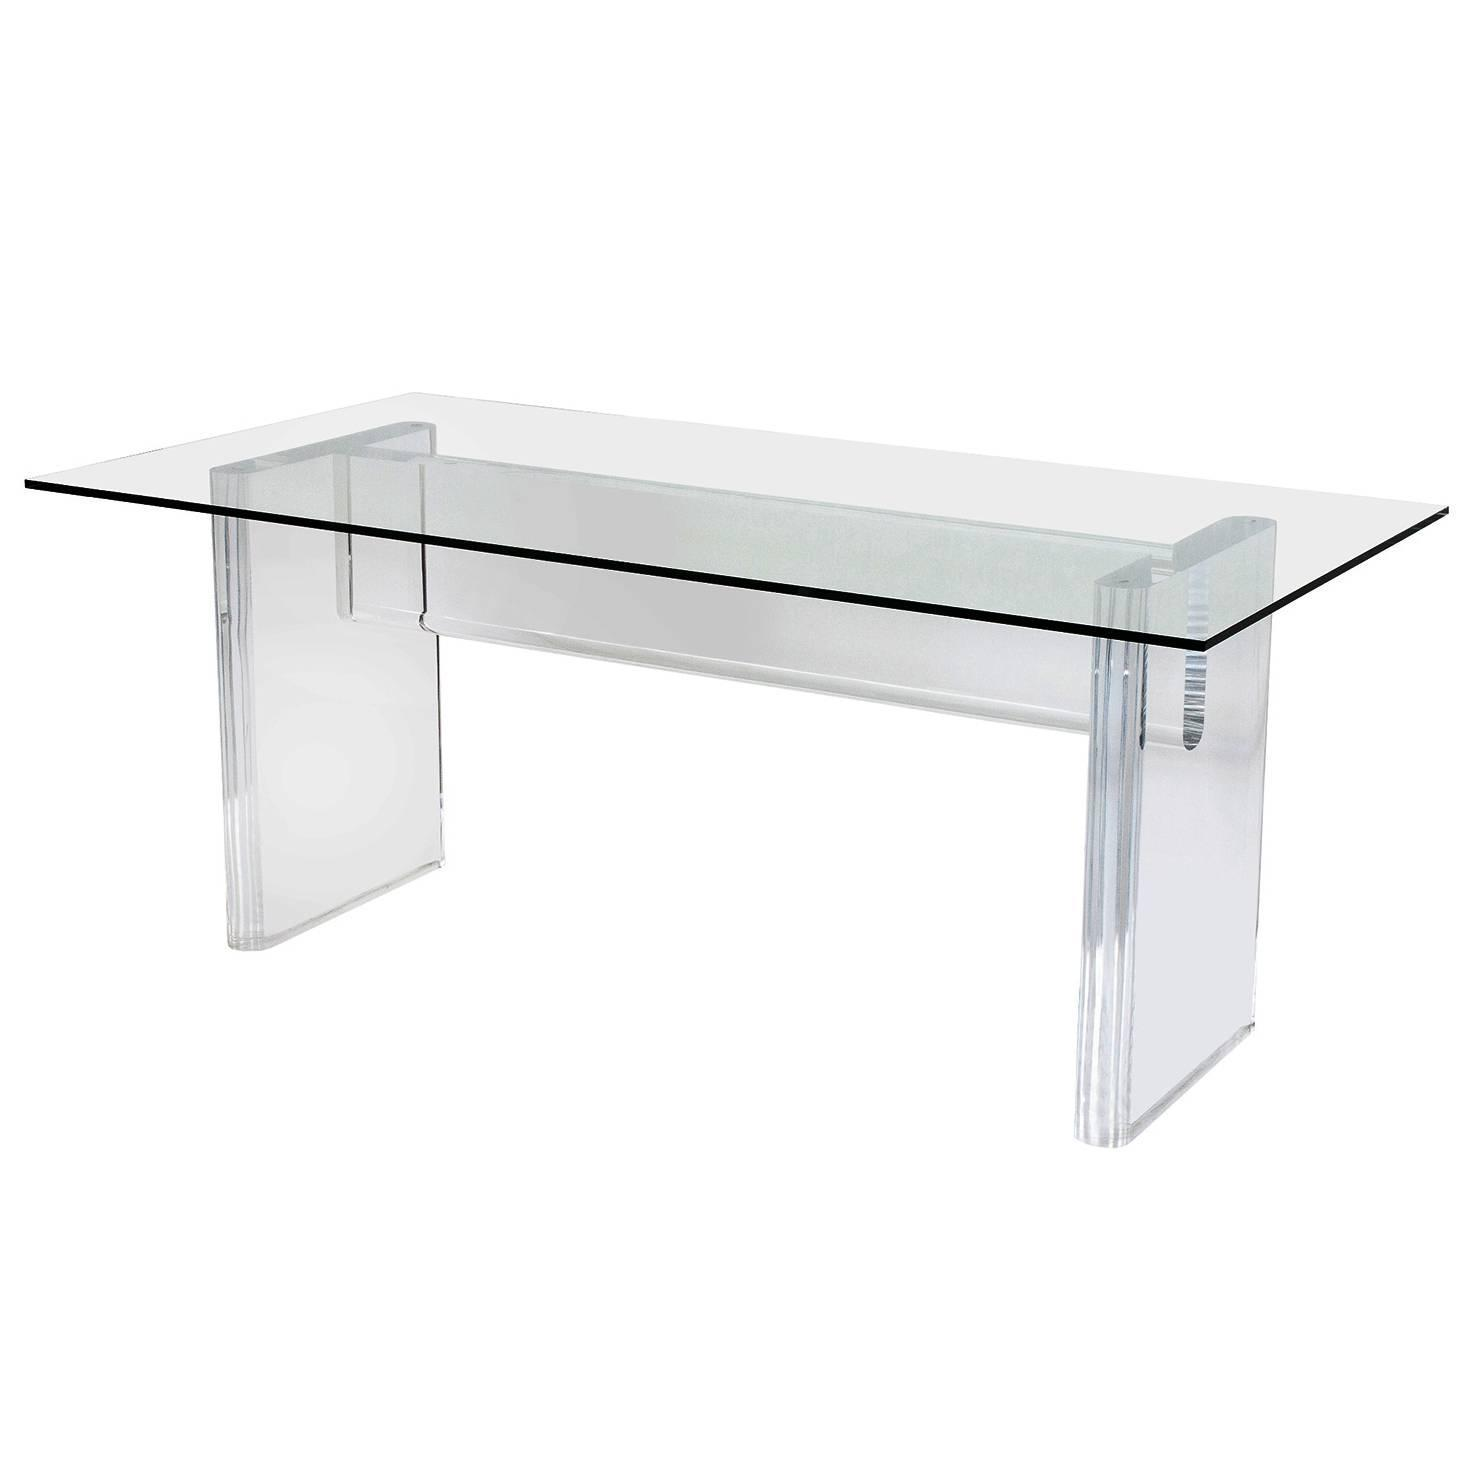 Karl springer style thick lucite dining table or desk at for Perspex furniture